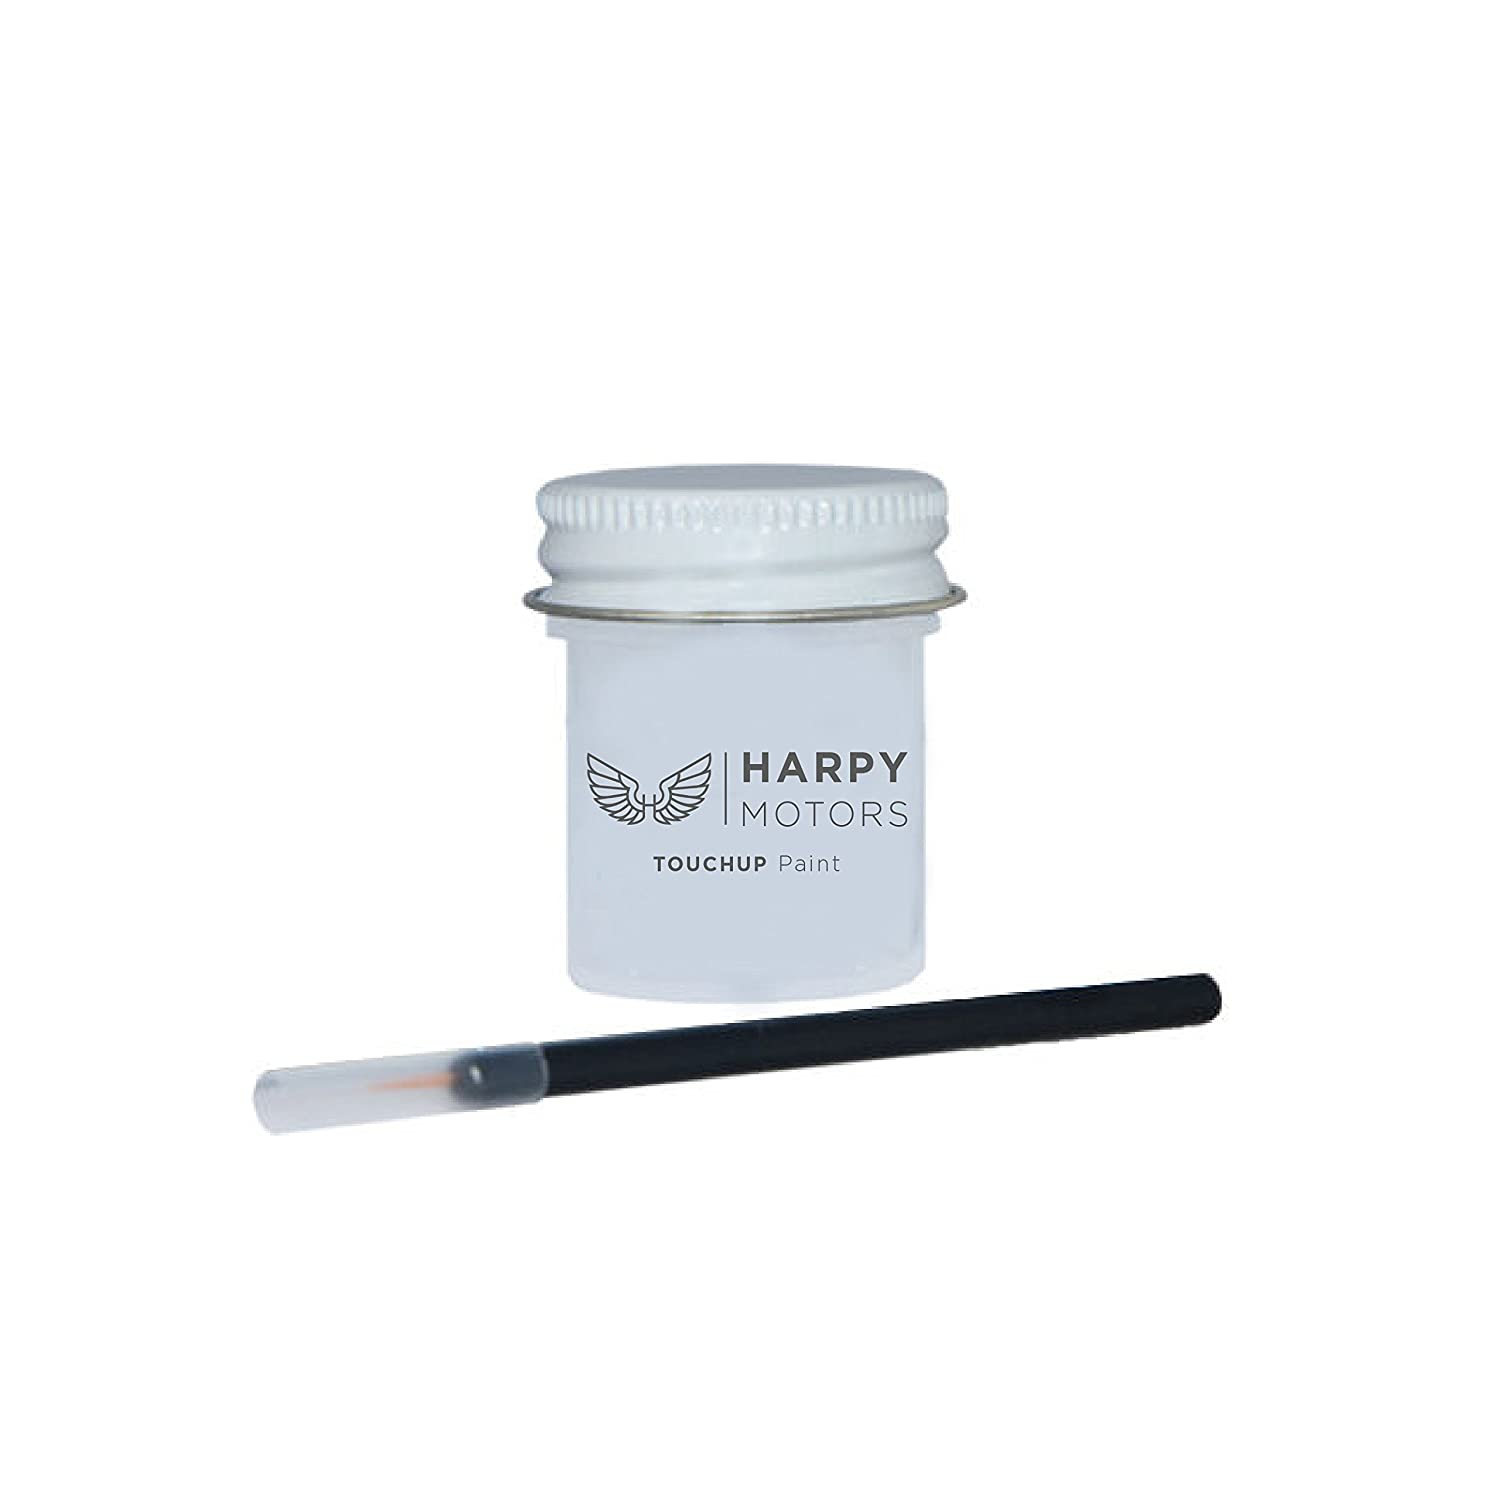 Harpy Motors 2014-2016 Infiniti Q50 QAA Moonlight White Pearl Automotive 1/2 oz Professional Touch up Paint with Brush -Color Match Guaranteed